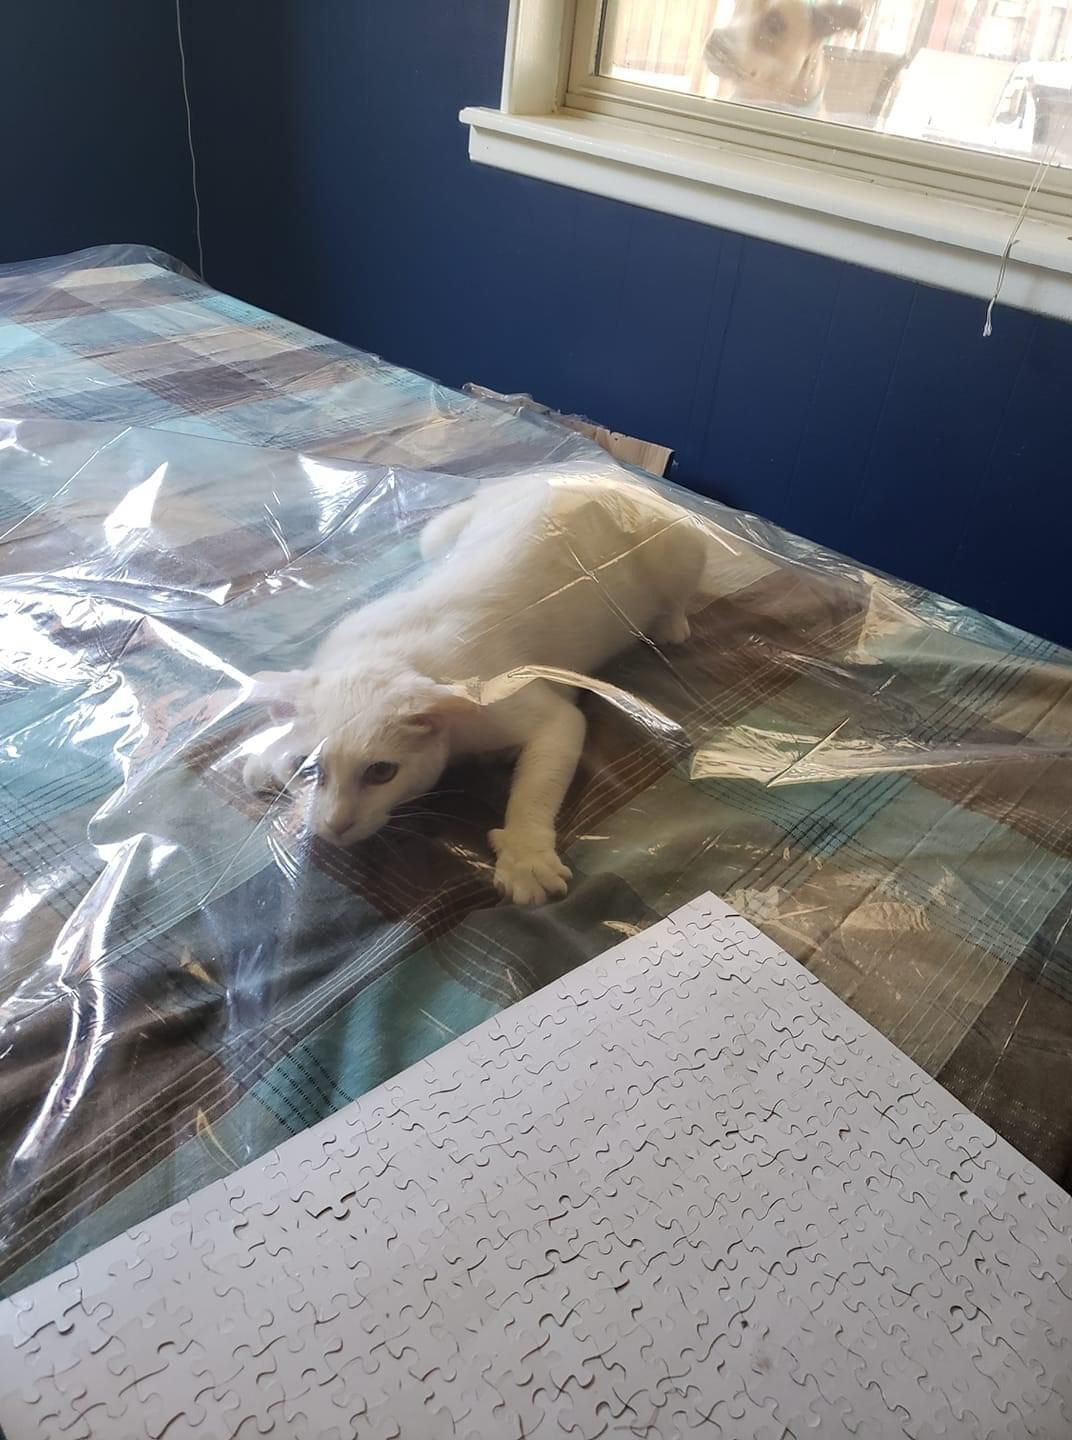 My friend put a plastic tablecloth down so the cats wouldn't think it's a blanket on the table just for them